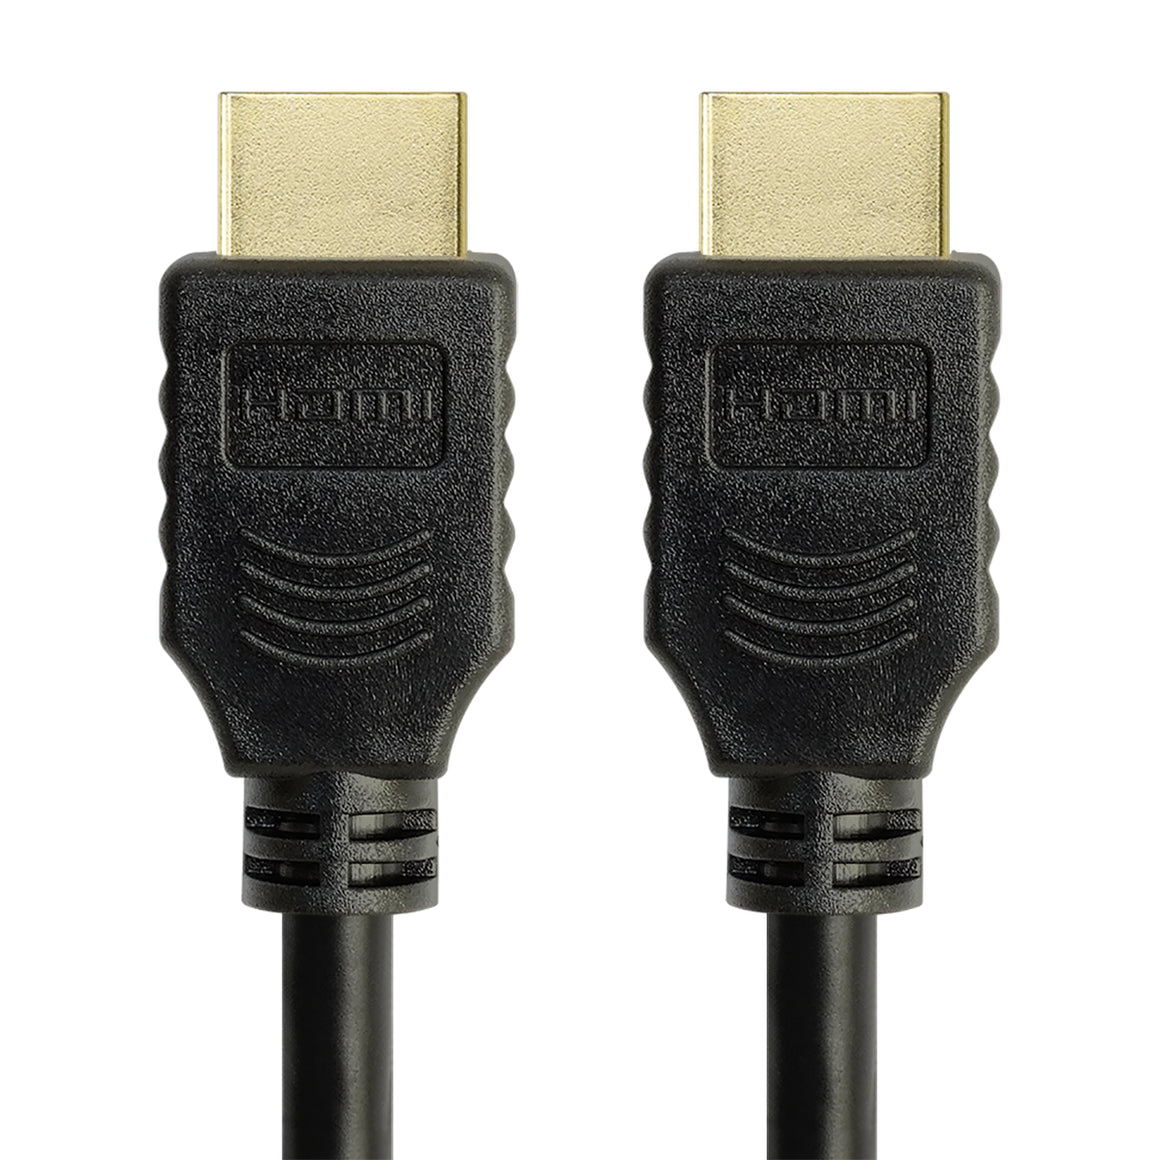 Omnigates High Speed HDMI Cable with Ethernet, 6ft